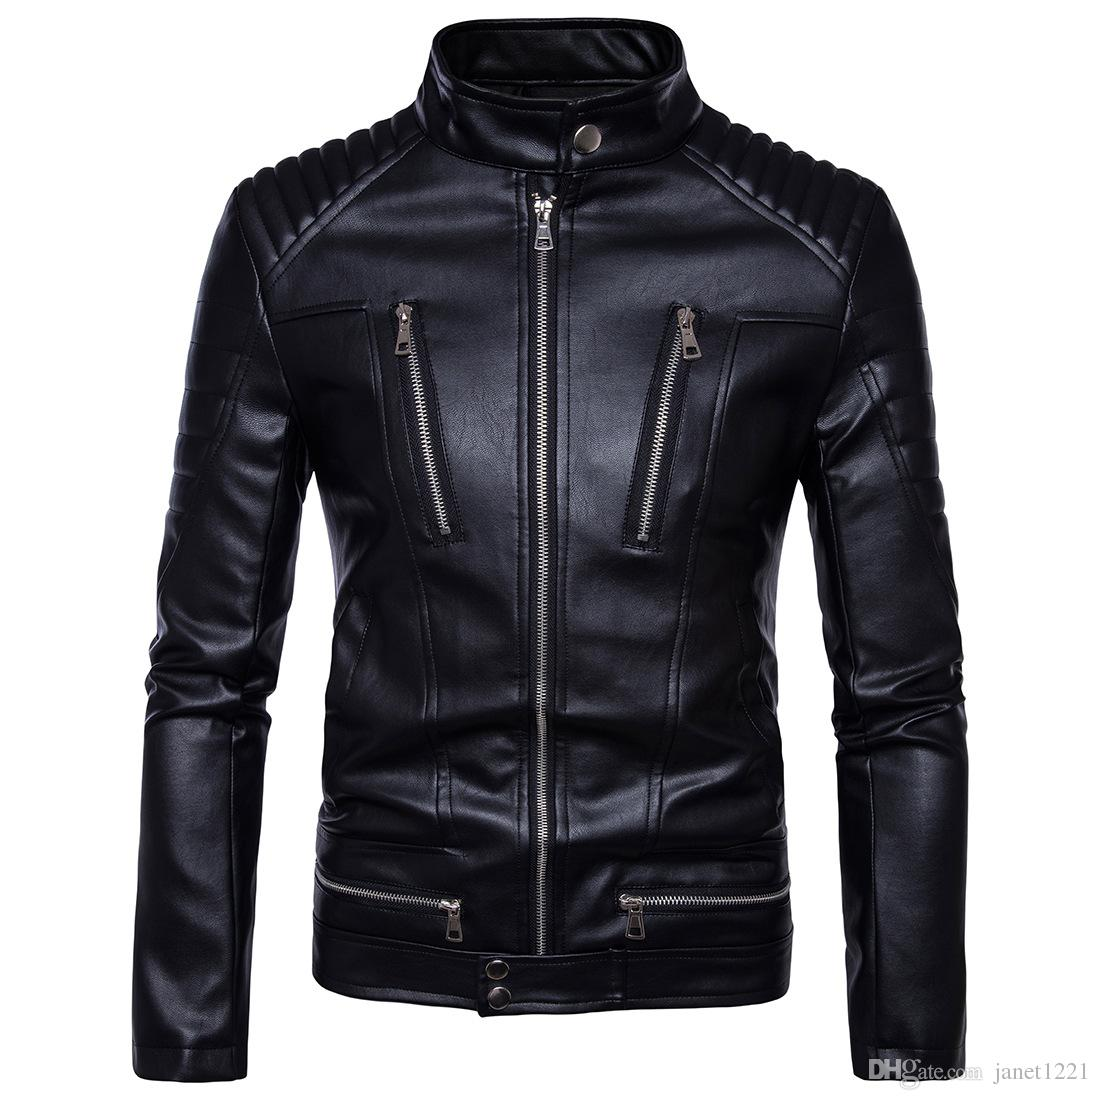 Plus Size Winter Men Faux Jackets Motorcycle Racing Cool Jackets With Multi Zippers Design PU Leather Coats Bomber Jacket J170702